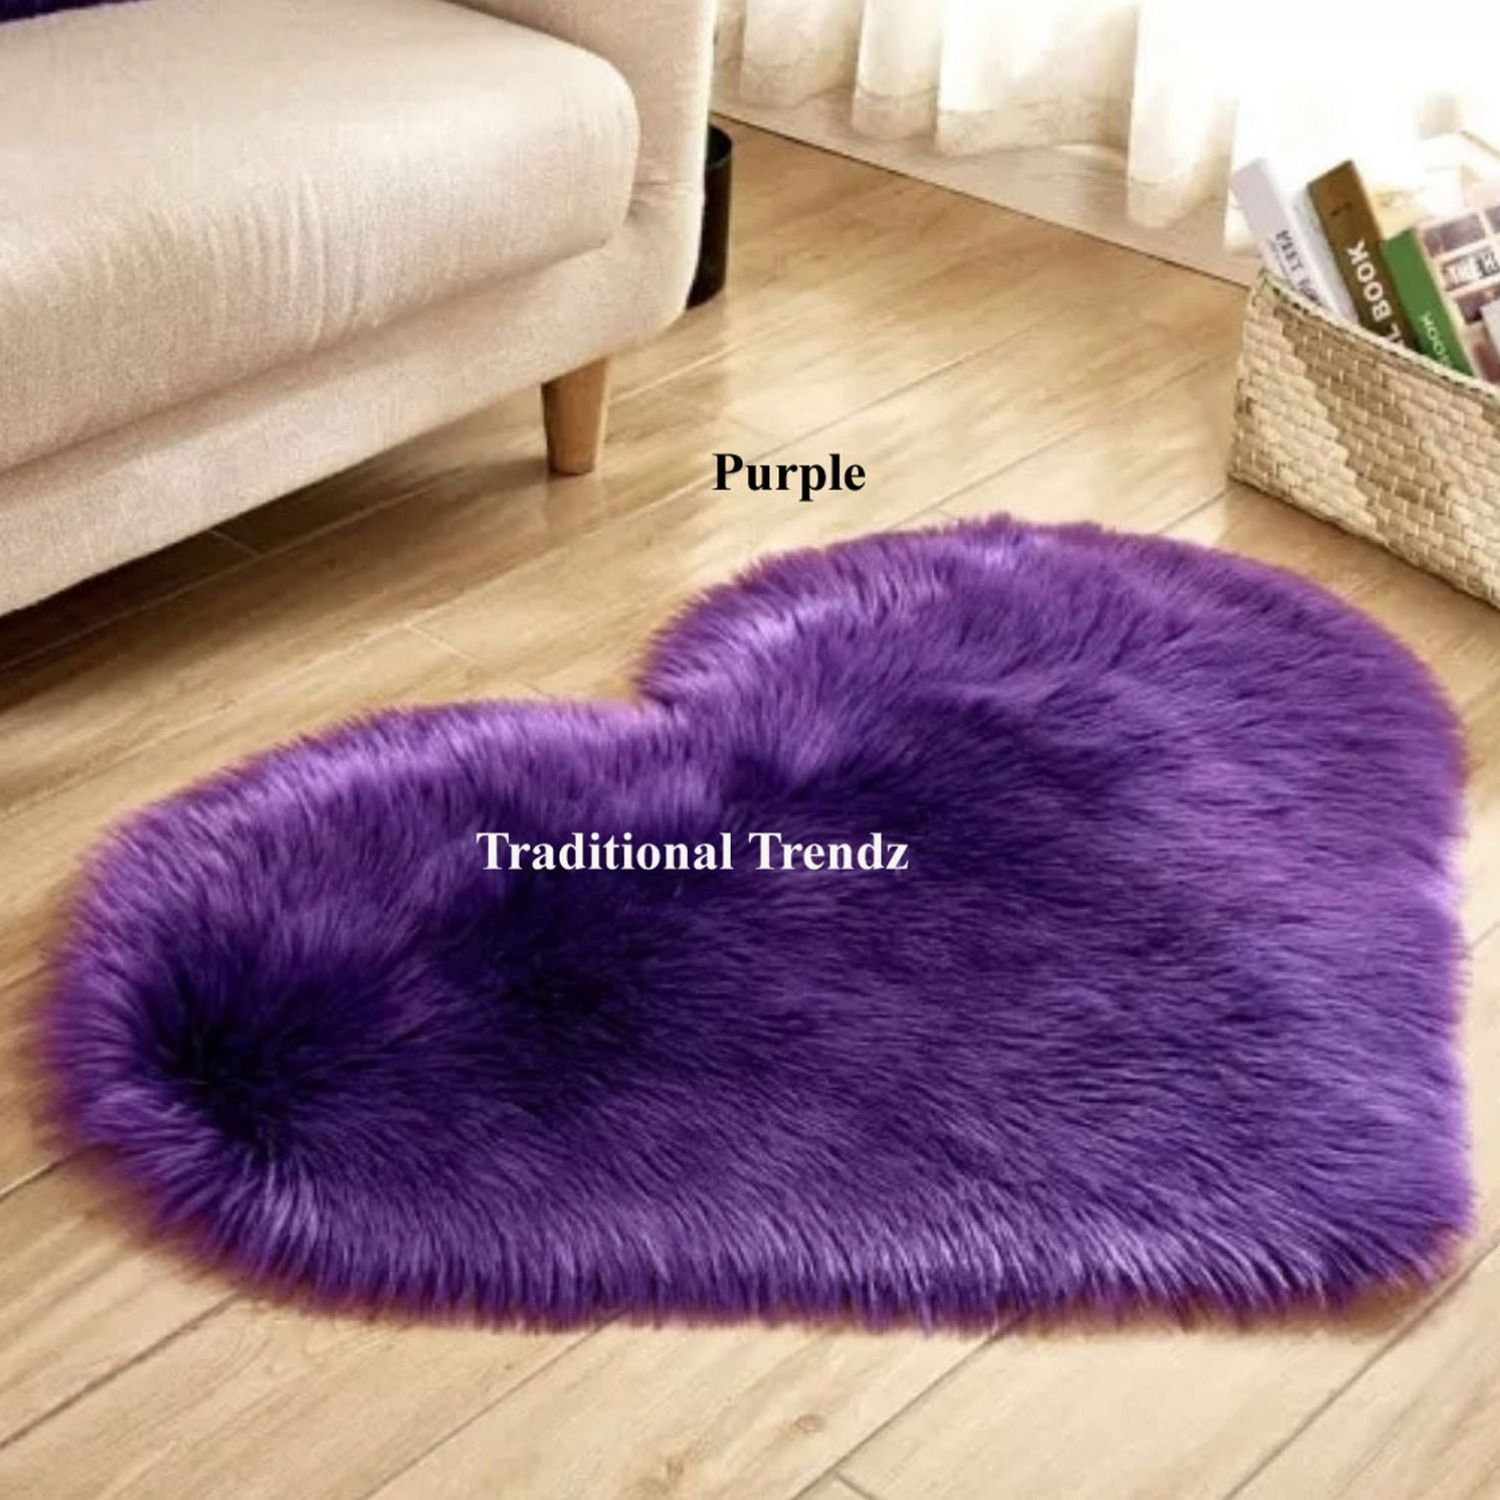 Heart Shaped Faux Sheepskin Hairy Fluffy Soft Area Rug For Bed Chair Throw Artificial Sheepskin Rug Sheepskin Rug White Sheepskin Rug Where To Buy Carpet